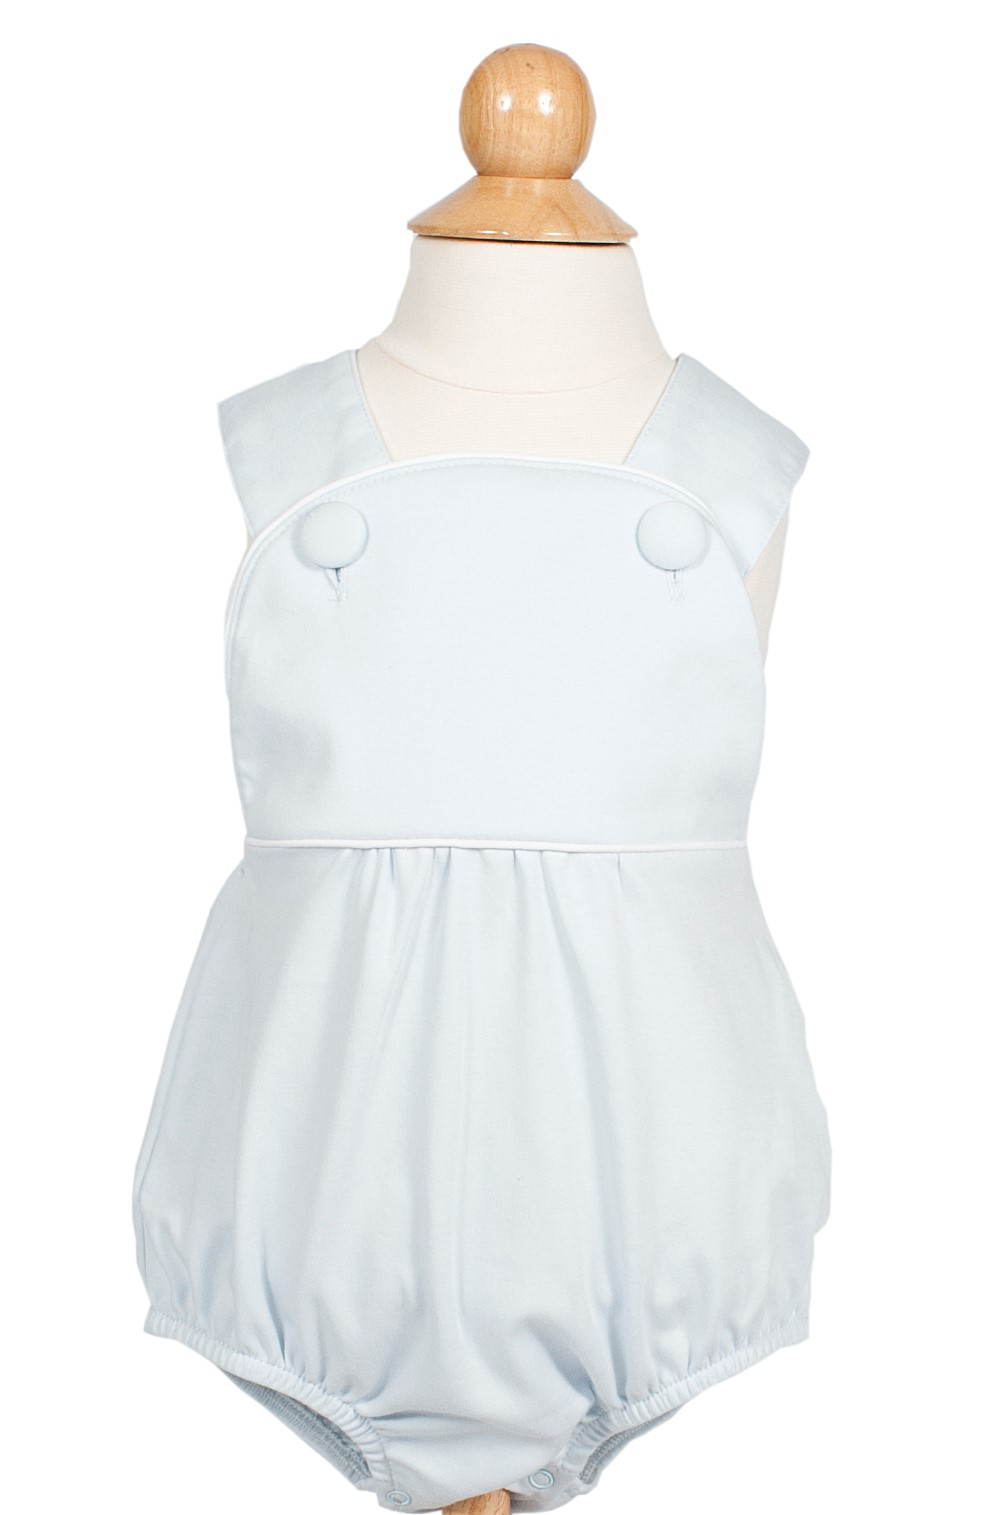 Benton bubble children's playwear shown in light blue colorway